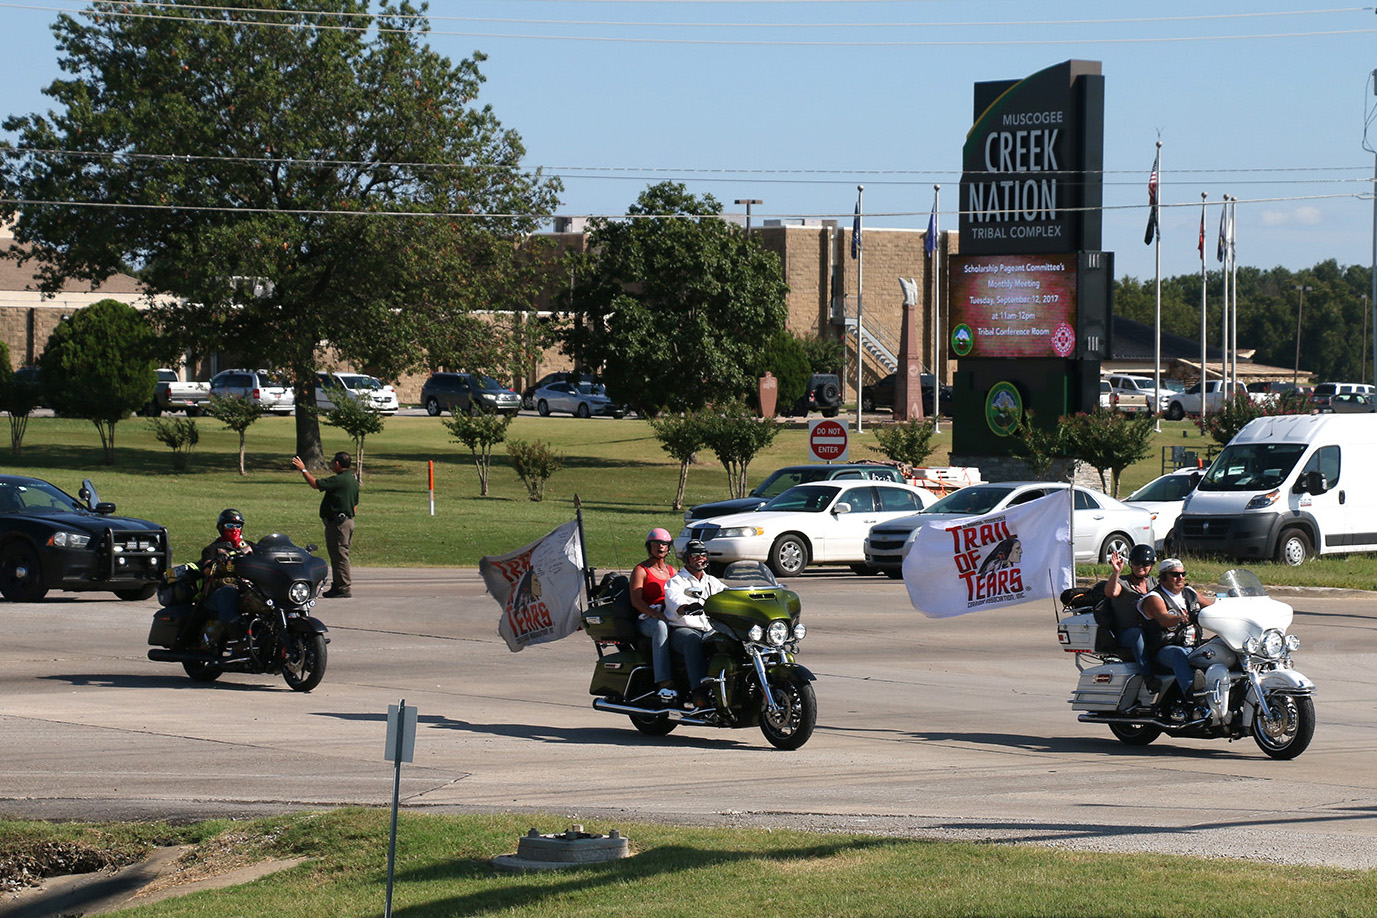 24th Annual Trail of Tears Commemorative Motorcycle Ride Makes Final Stop at Claude Cox Omniplex